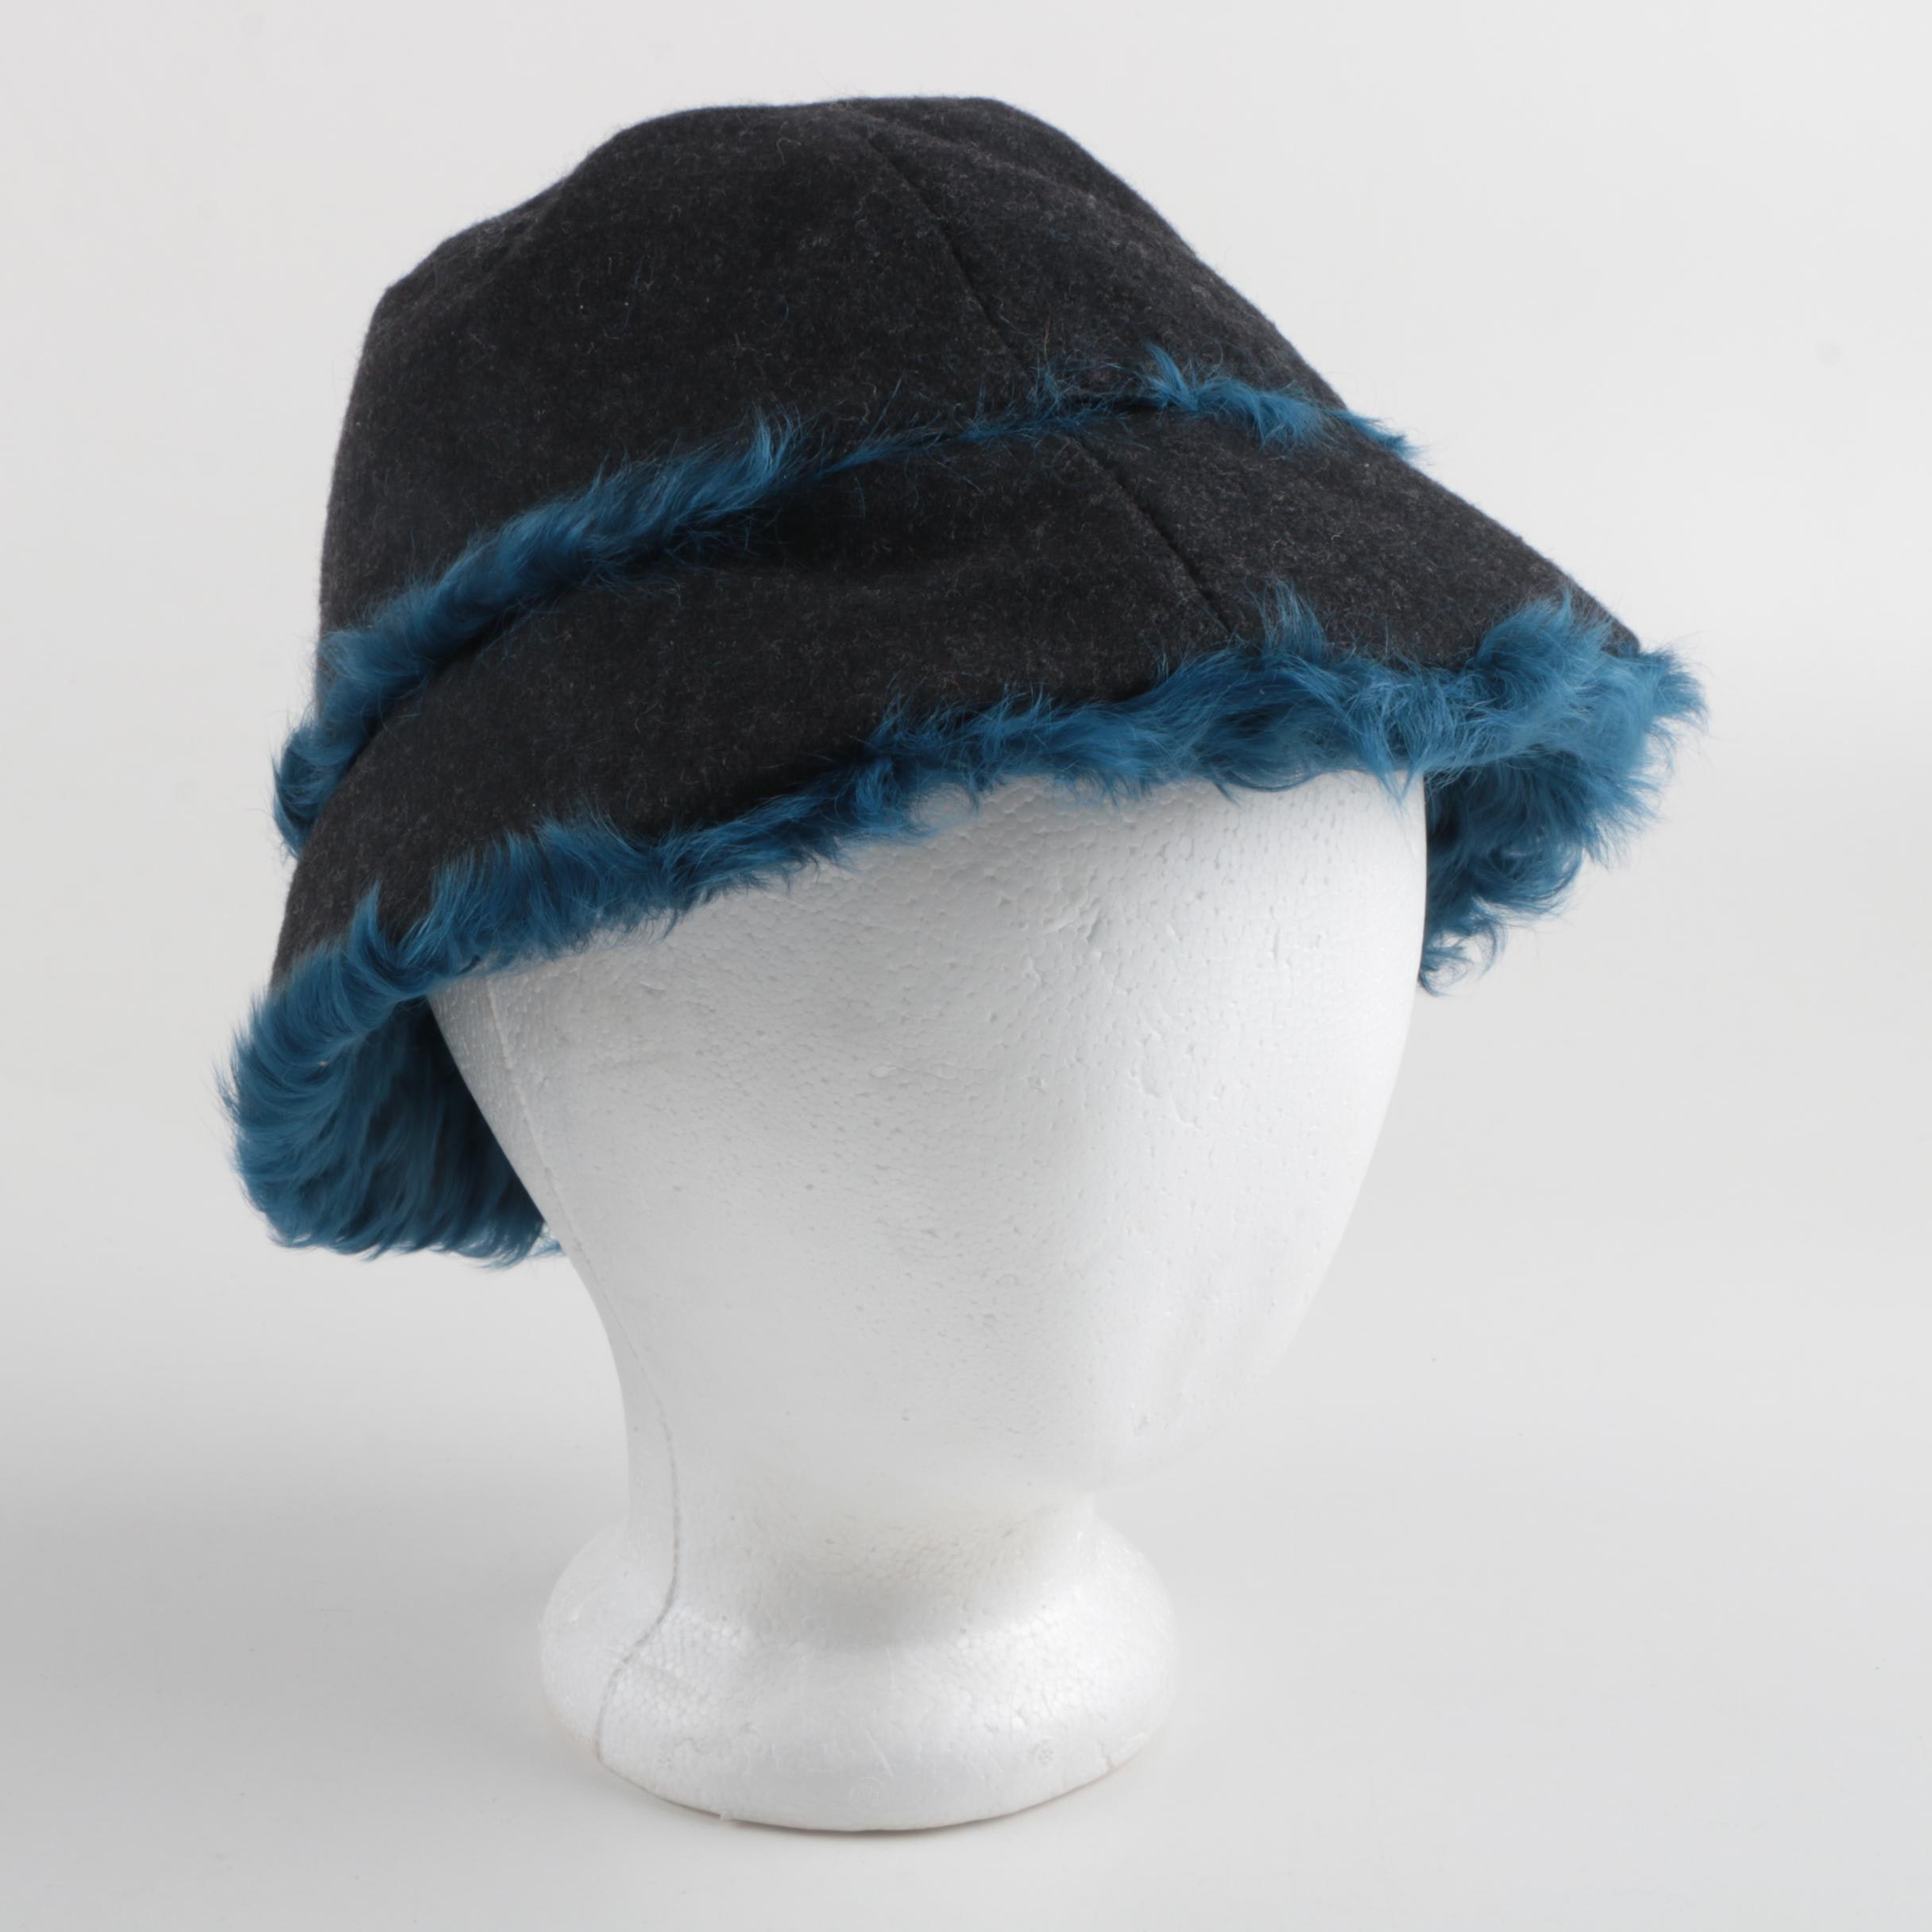 Dolce&Gabbana Grey Felt and Blue Dyed Shearling Bucket Hat